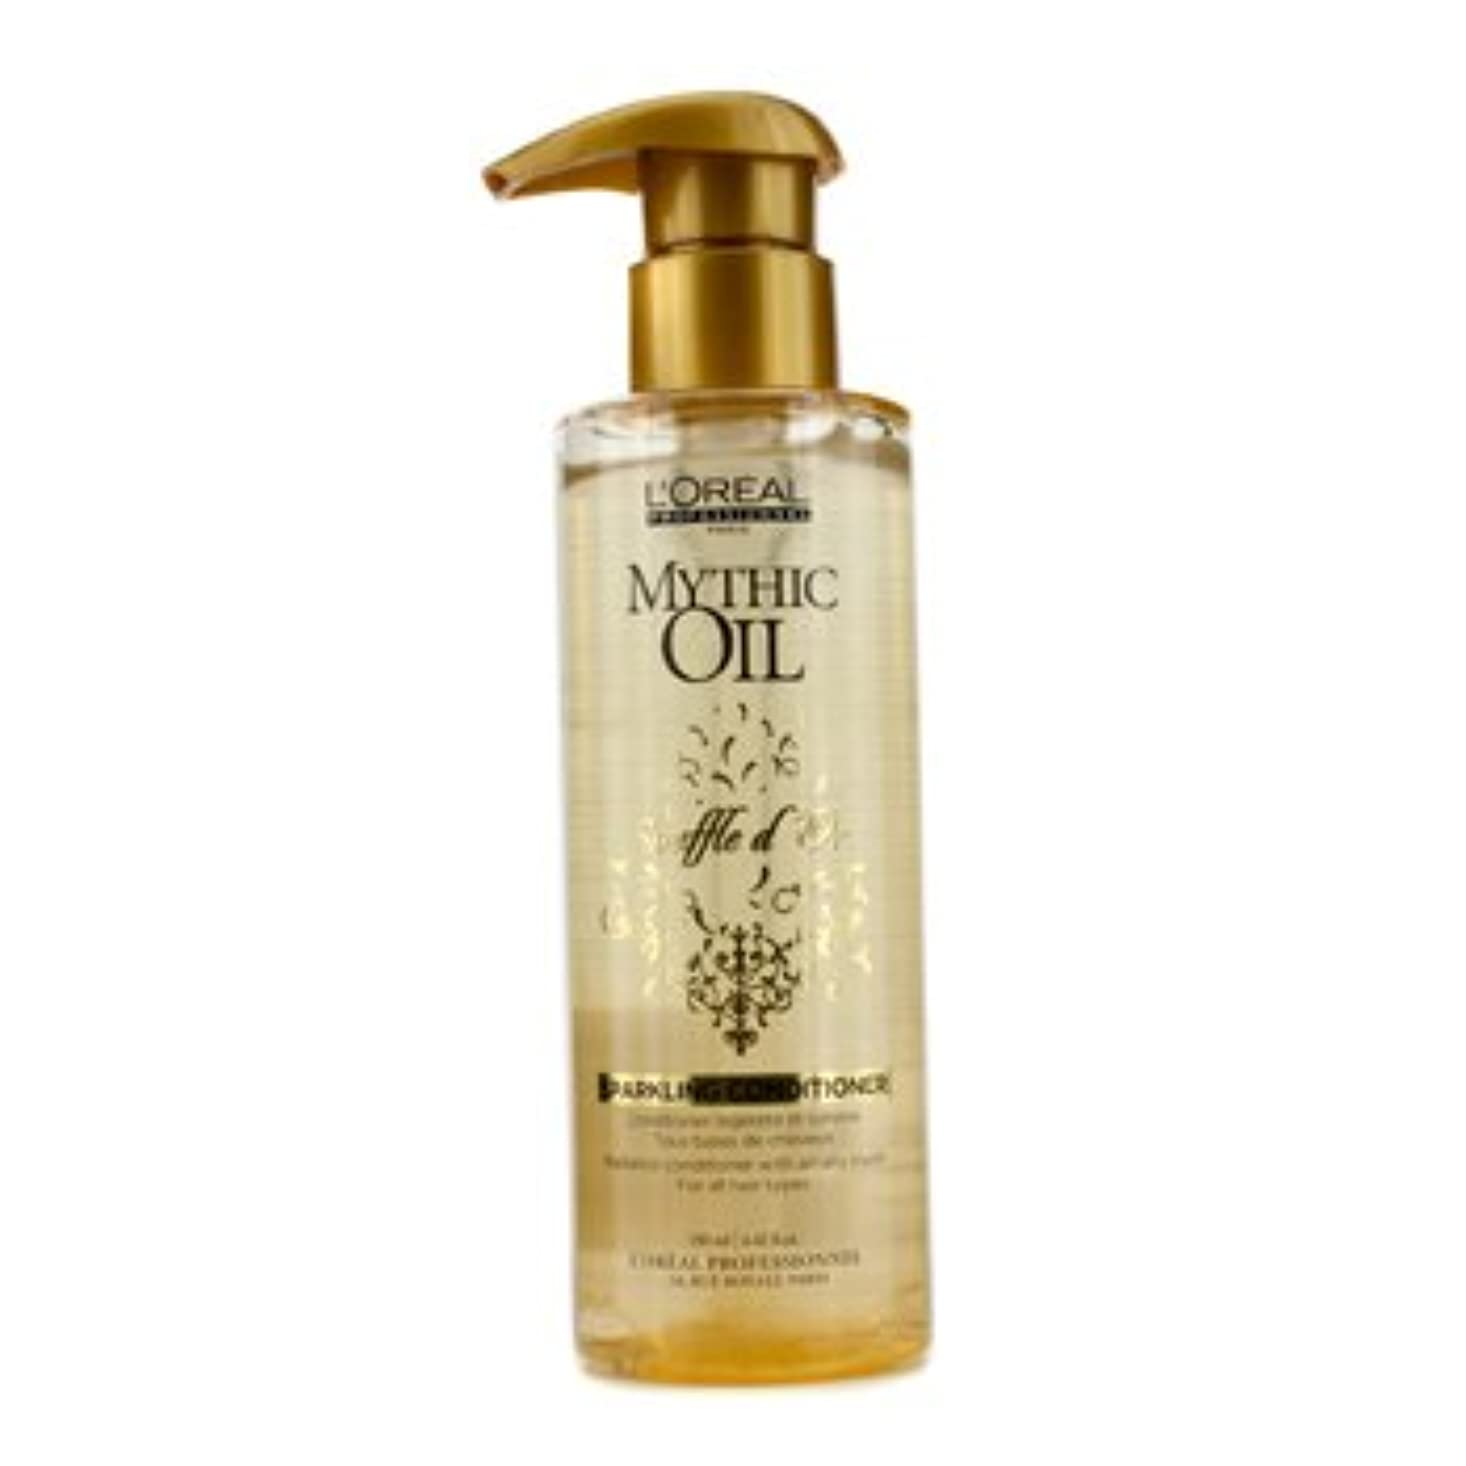 冒険家半径スキッパー[LOreal] Mythic Oil Souffle dOr Sparkling Conditioner (For All Hair Types) 190ml/6.42oz